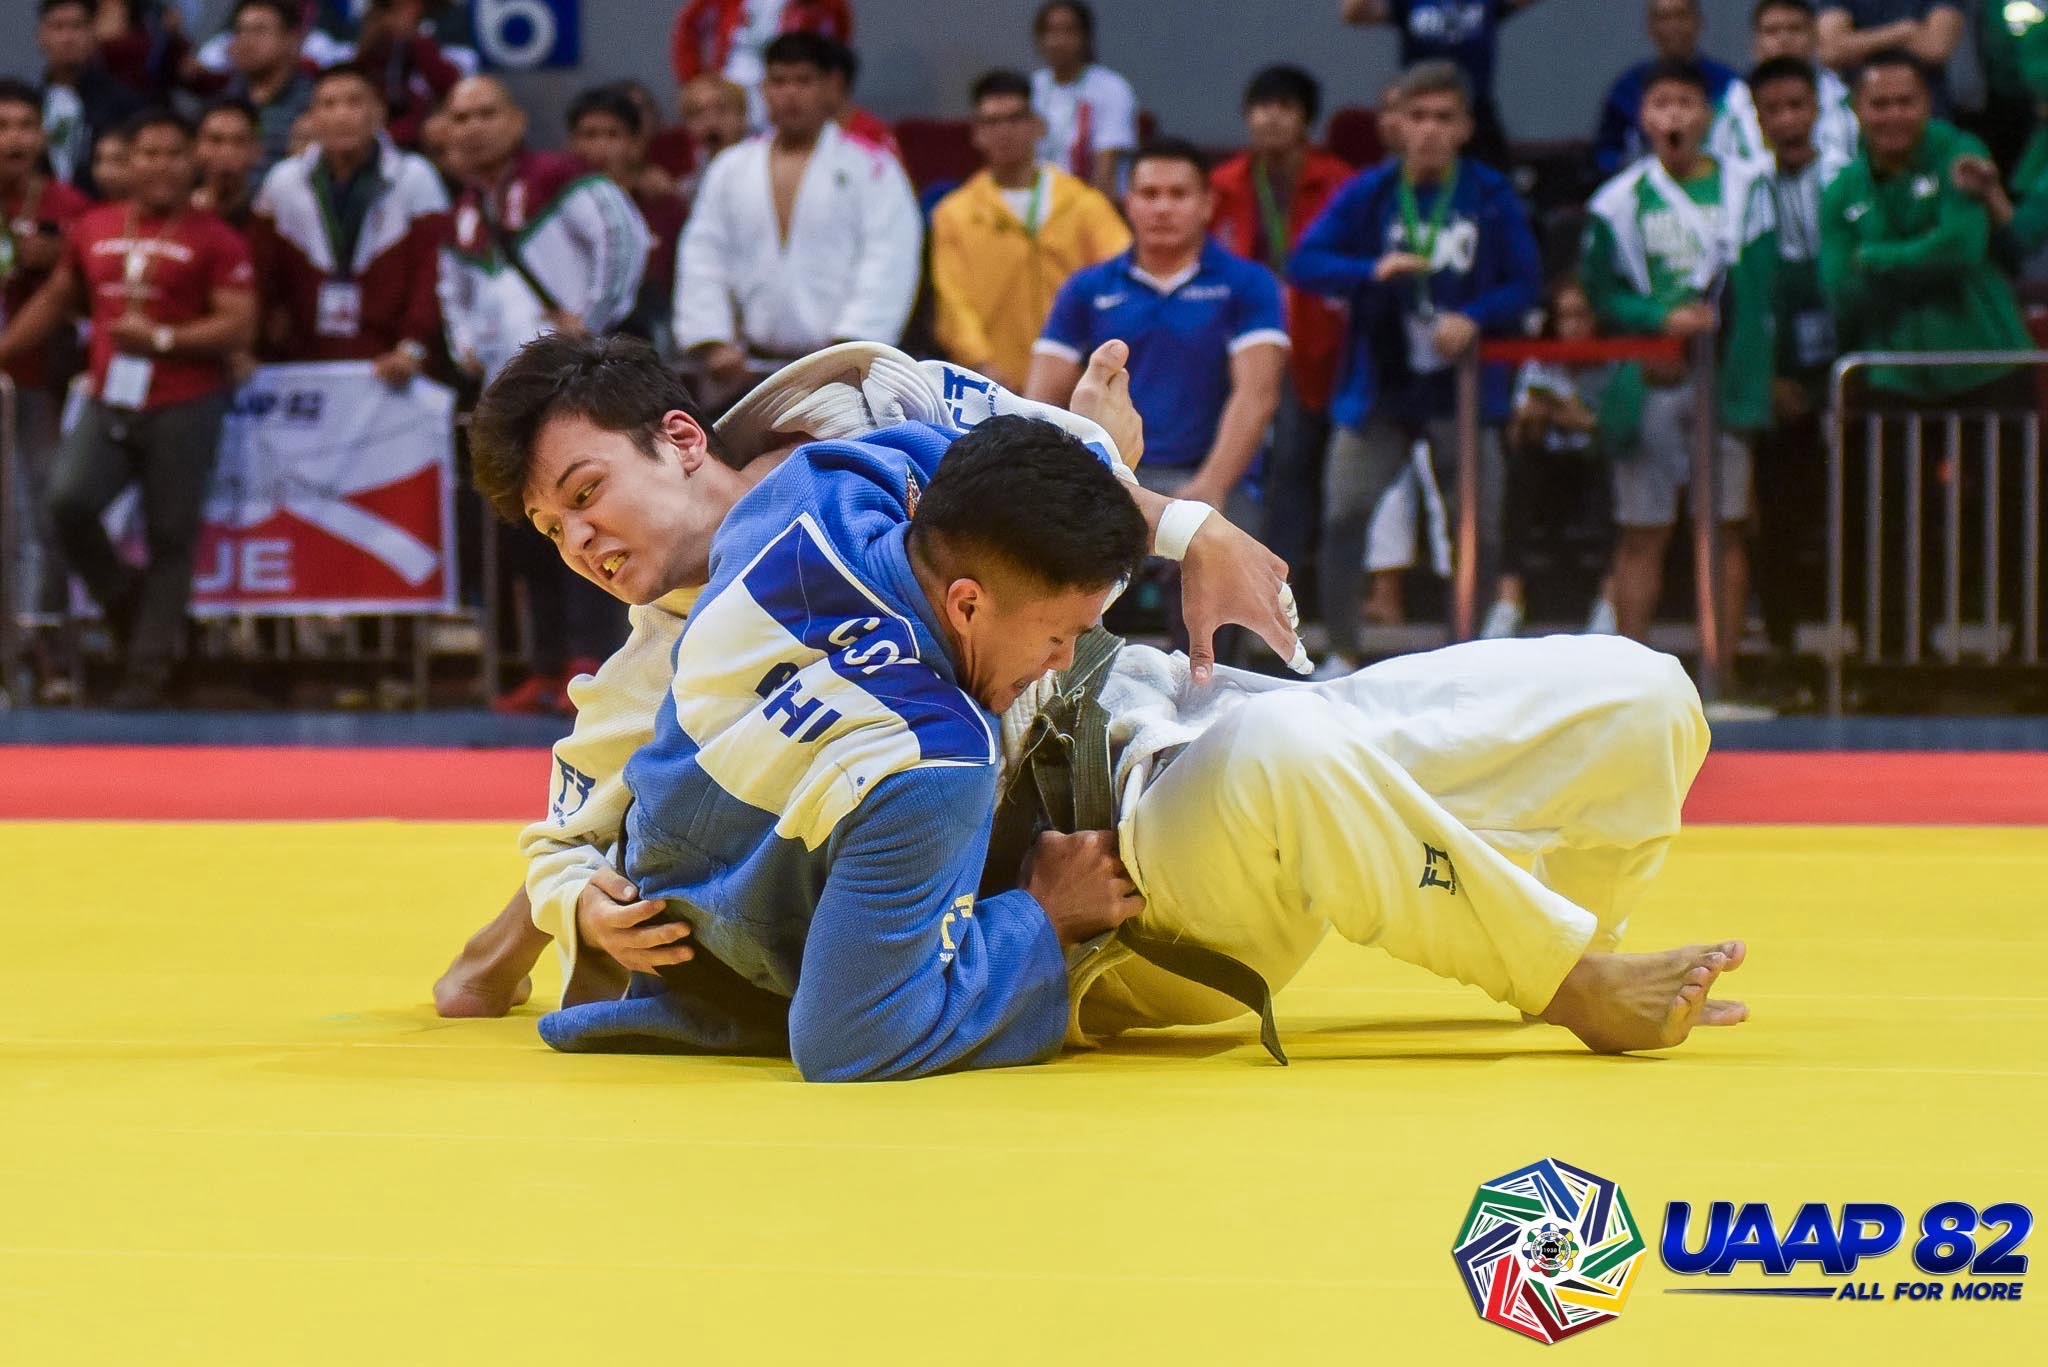 Tiebreaker Times Zarchie Garay stuns Keith Reyes as UP holds lead over UST in UAAP Judo ADMU DLSU Judo News UAAP UP UST  Zarchie Garay Yonji Avendano UST Men's Judo UP Men's Judo UAAP Season 82 Judo UAAP Season 82 Tristan Reyes Keith Reyes Jayvee Ferrer Henry Marguiles DLSU Men's Judo Dither Tablan Daniel Amores Chino Sy Ateneo Men's Judo